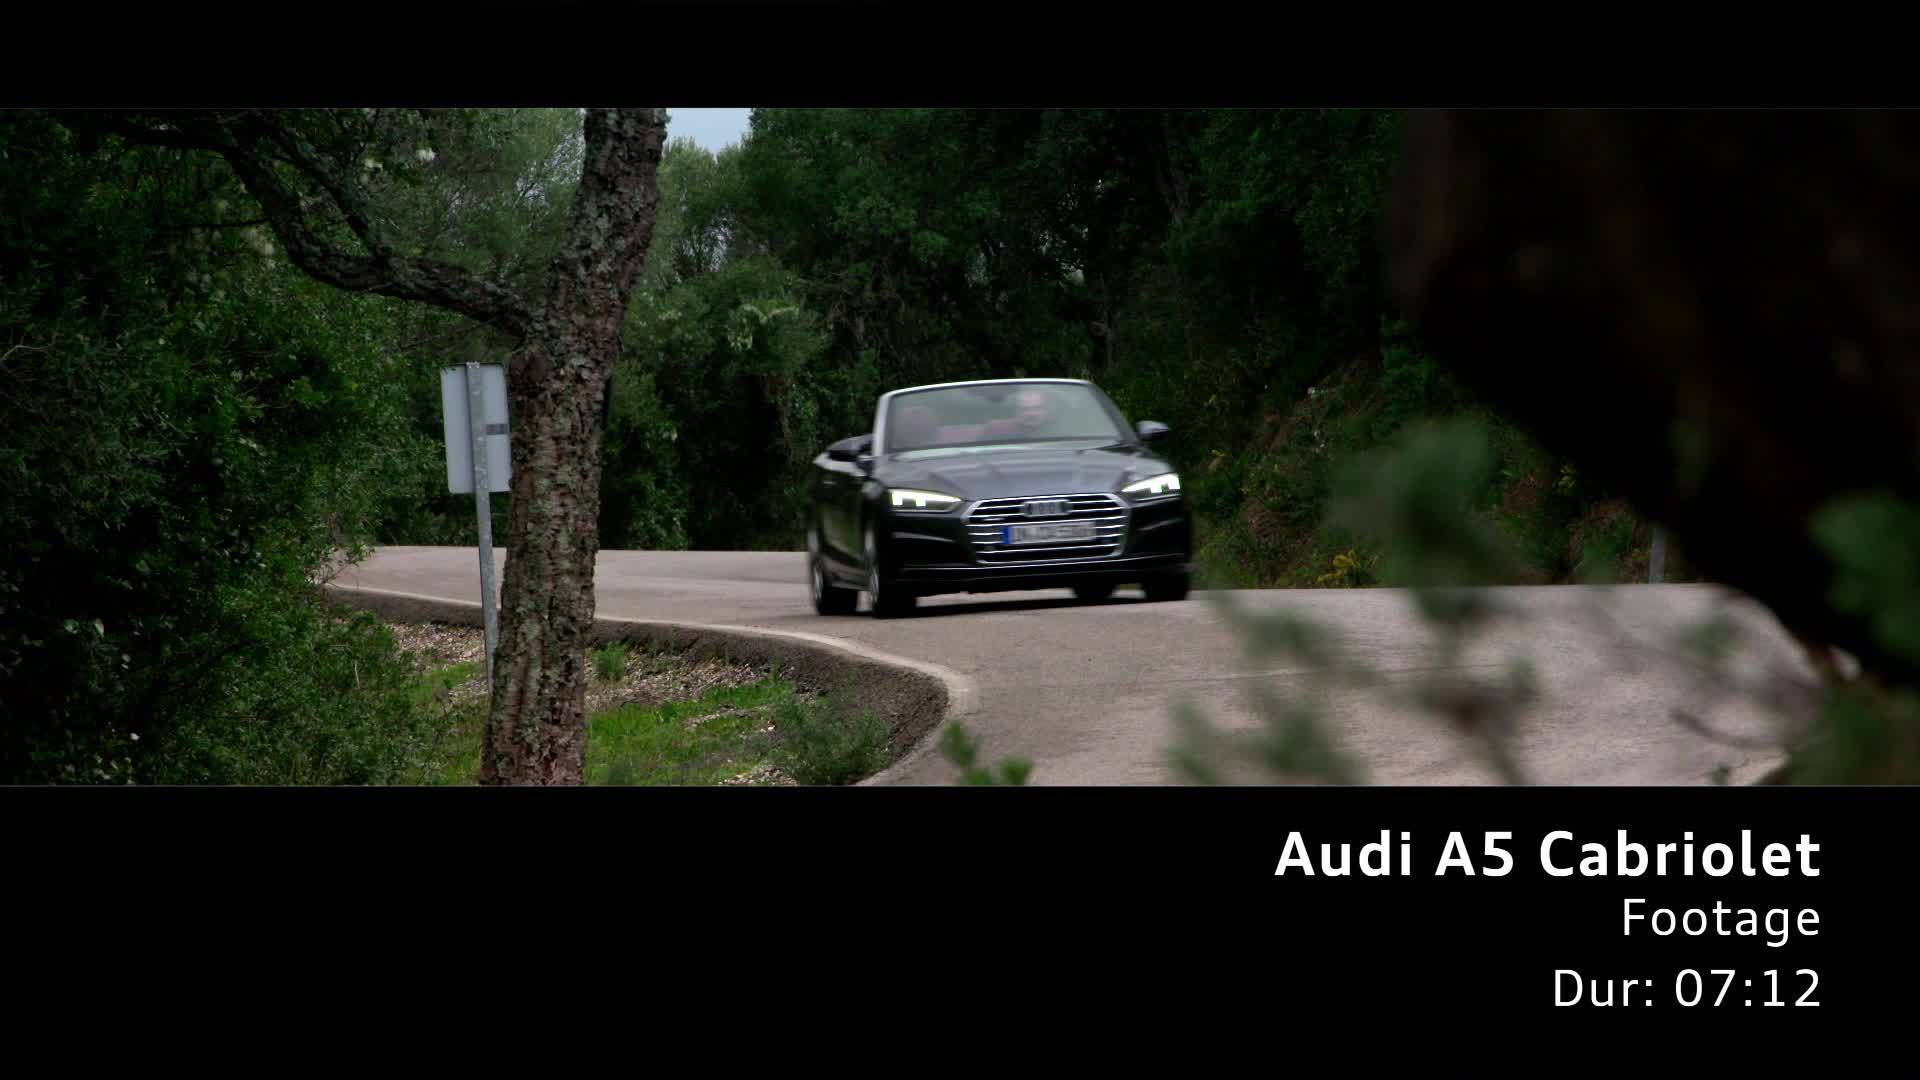 Audi A5 Cabriolet Footage on Location